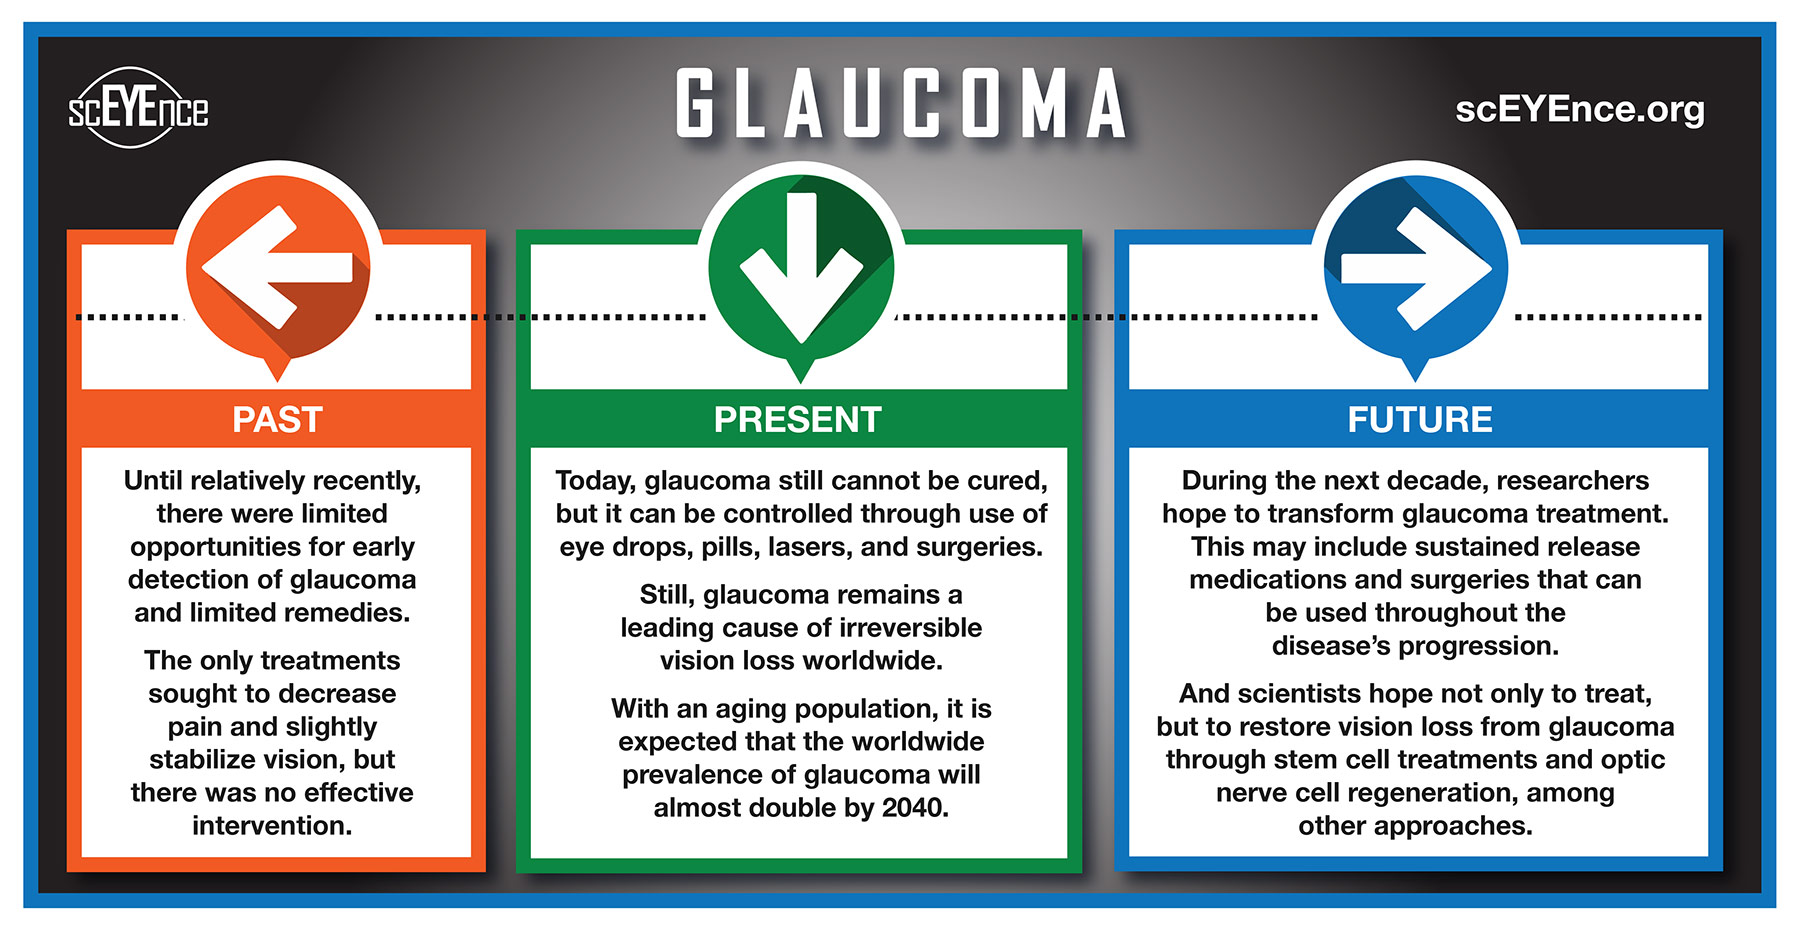 Timeline for Glaucoma research in orange, green, and blue on black background